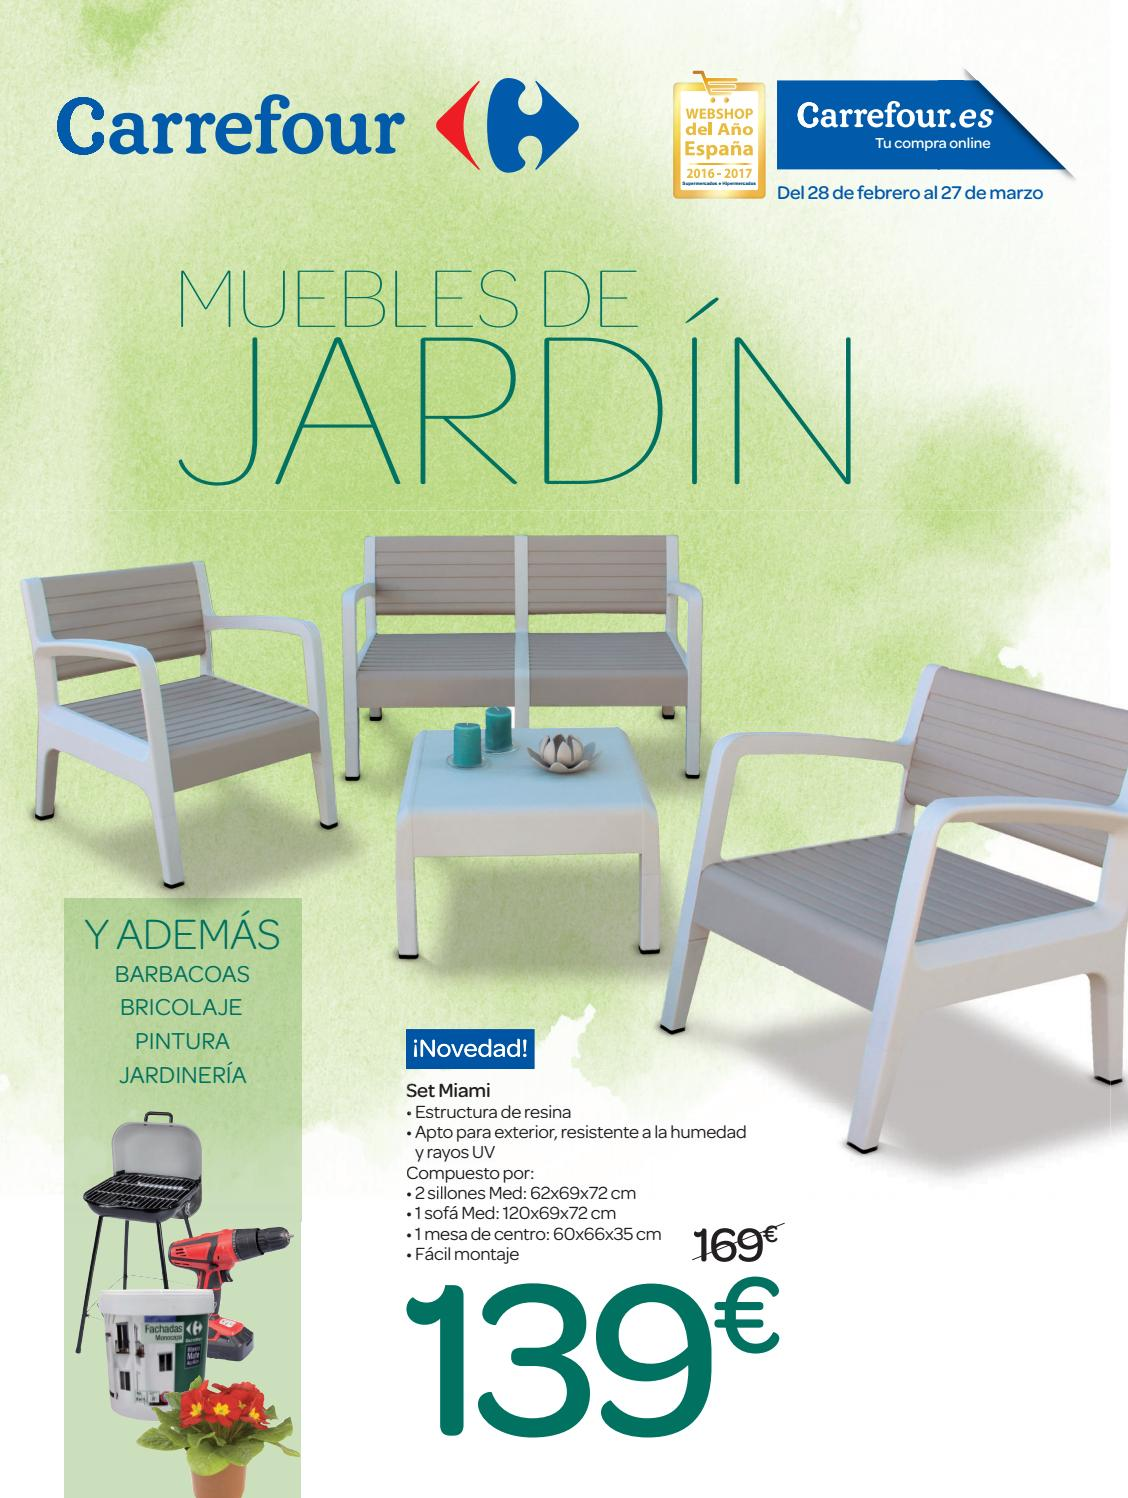 Muebles de jardin carrefour by ofertas supermercados issuu for Carrefour mesas y sillas